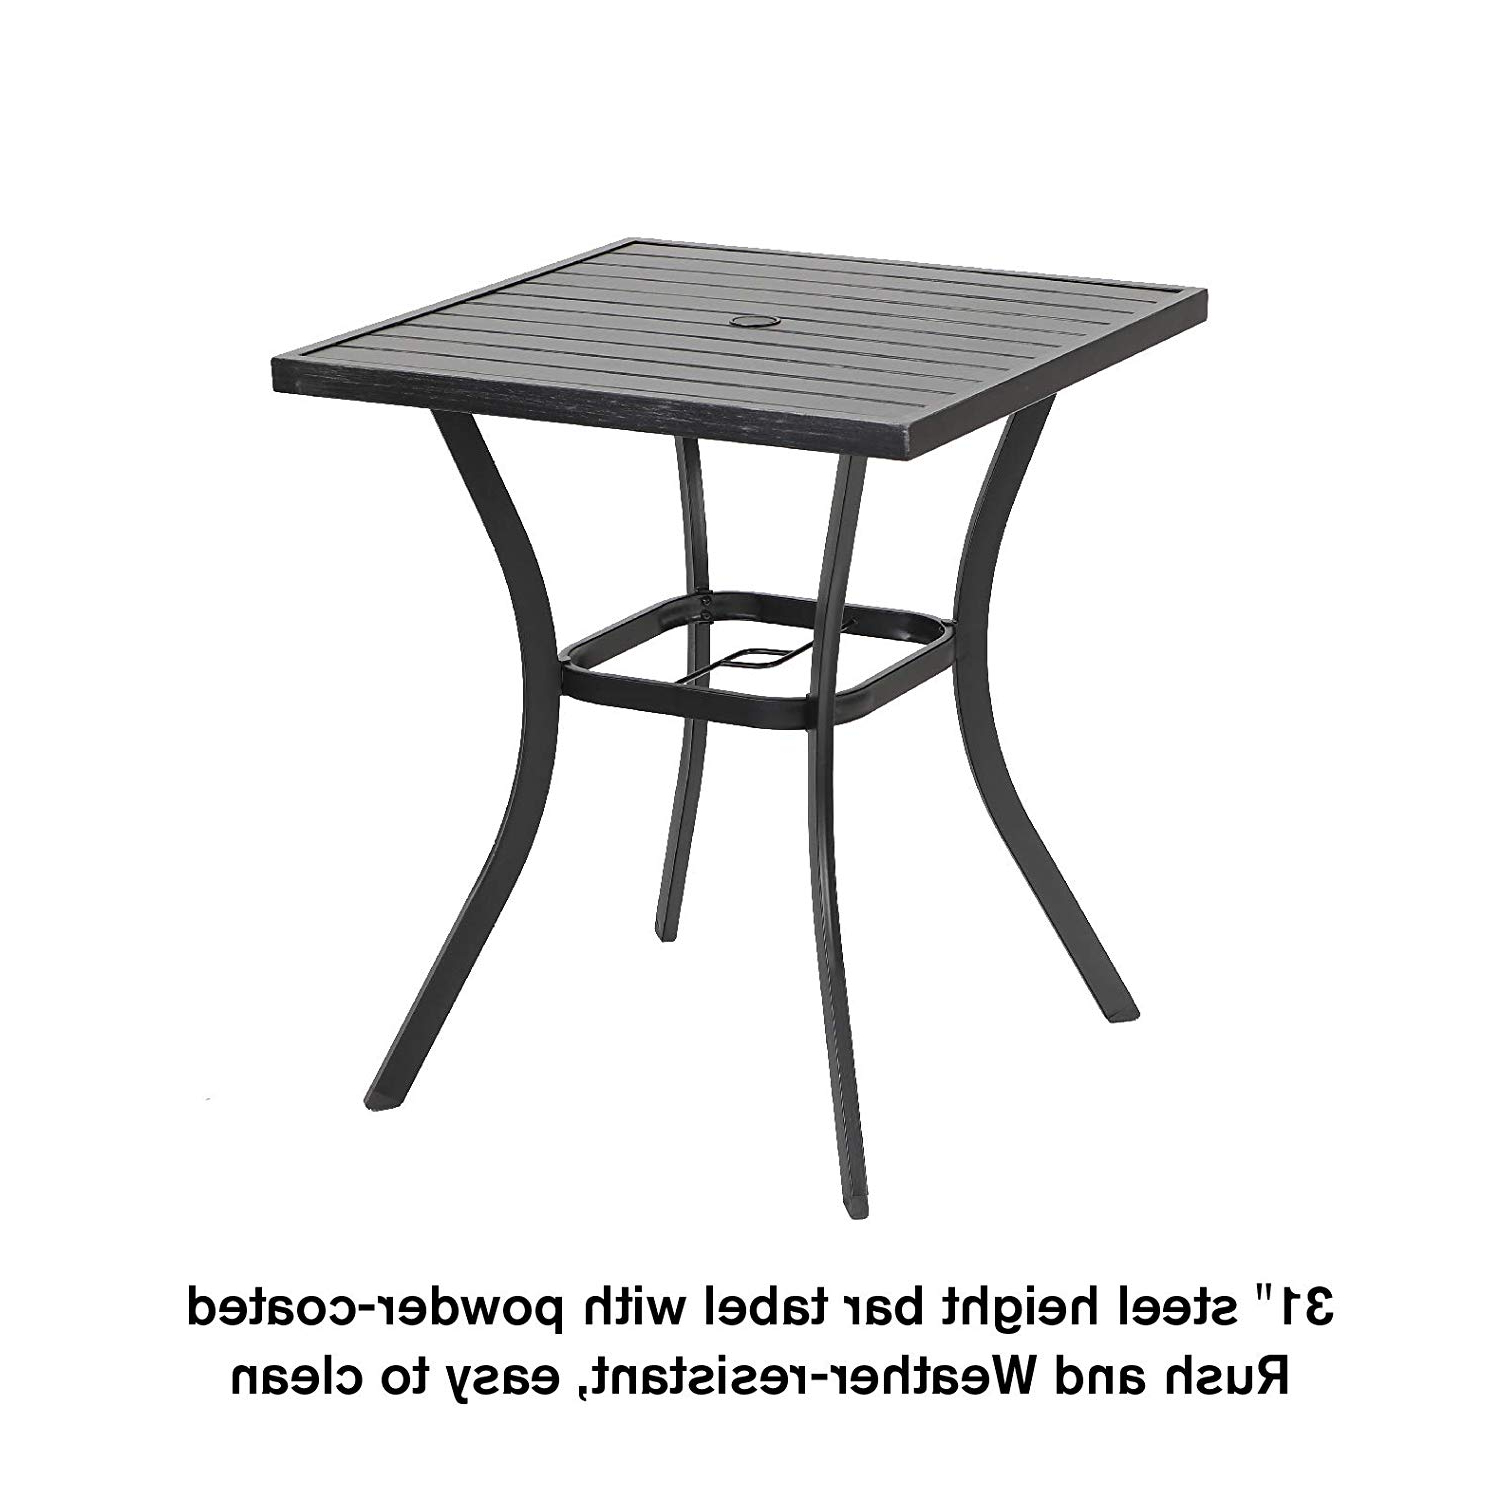 Popular 36 Height With Umbrella Hole For Outdoor Garden Phi Villa 31 For Patio Square Bar Dining Tables (View 16 of 25)